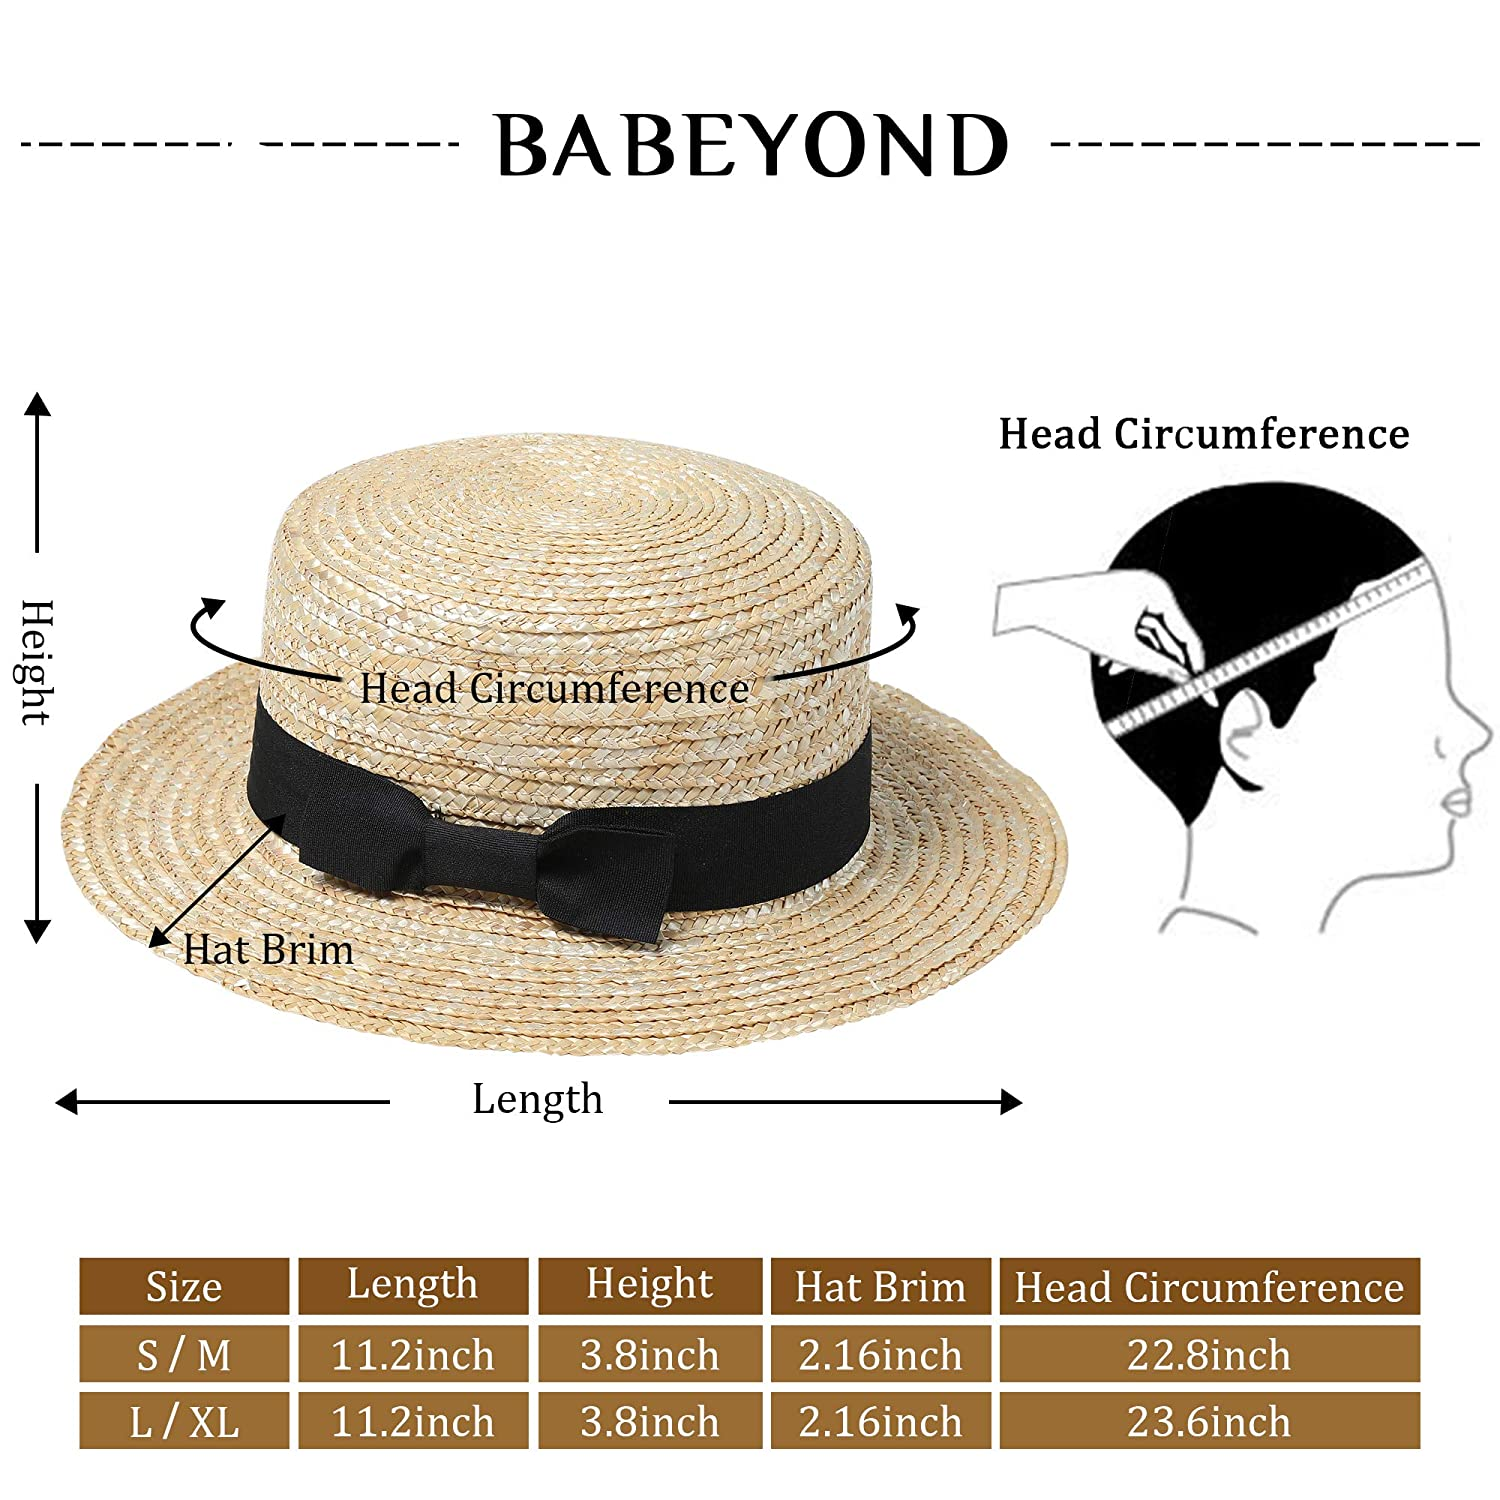 BABEYOND Mens 1920s Brim Boater Hat Gatsby Straw Hat 20s Costume Accessories